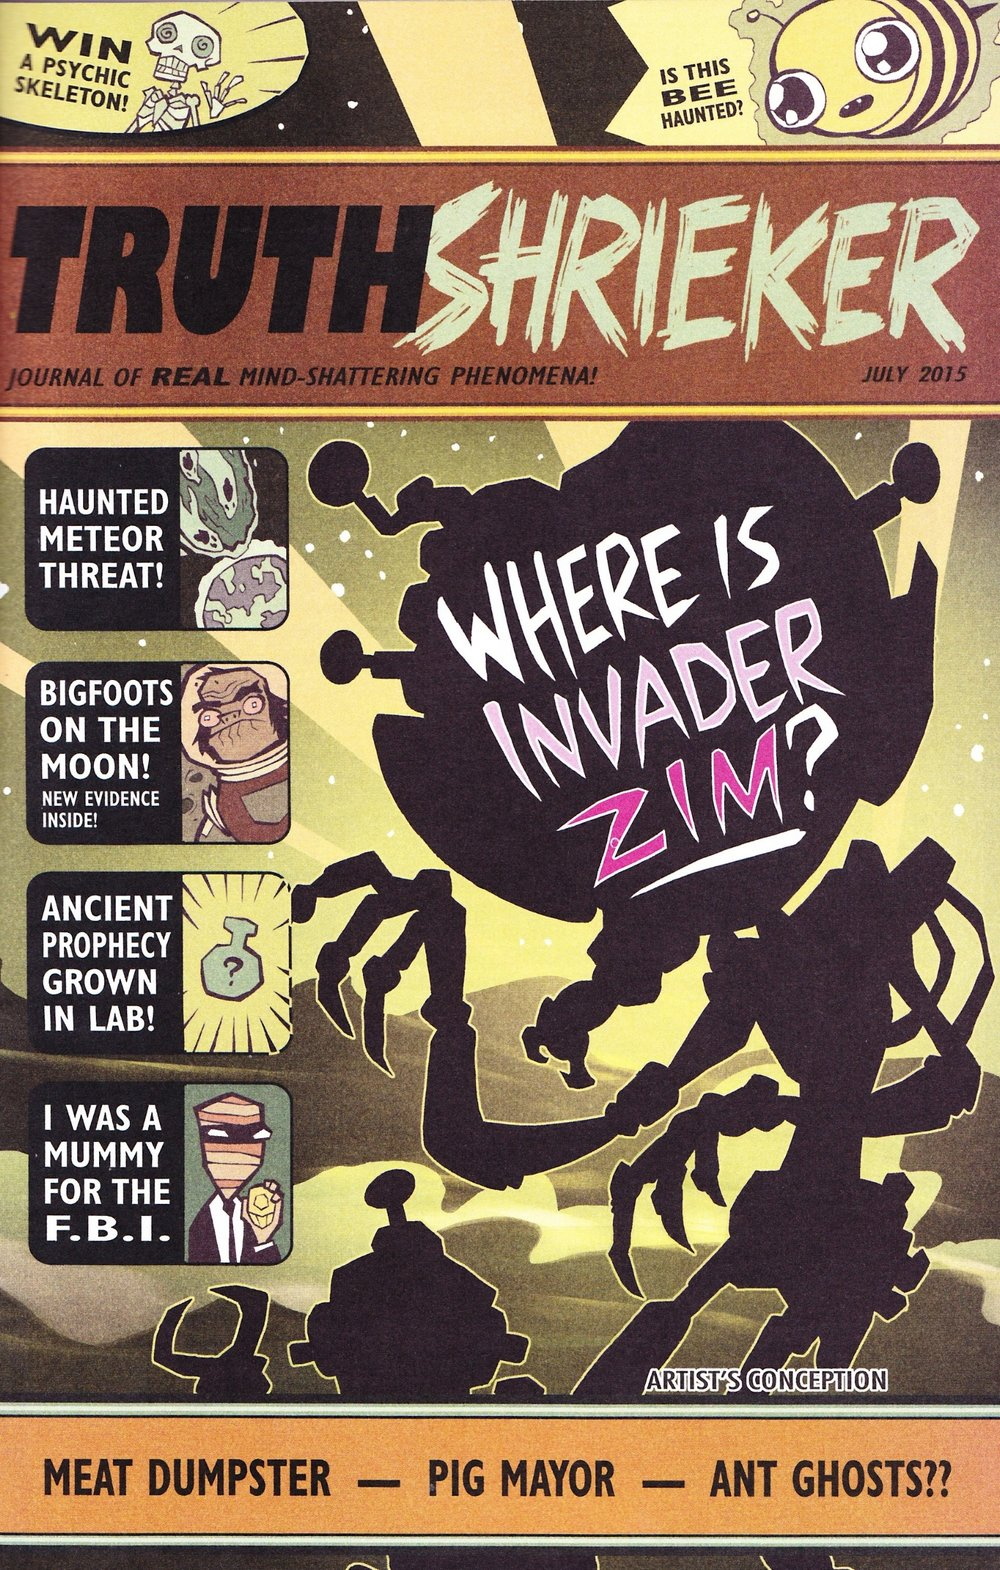 TruthShrieker_(Issue-0)_Cover.jpg